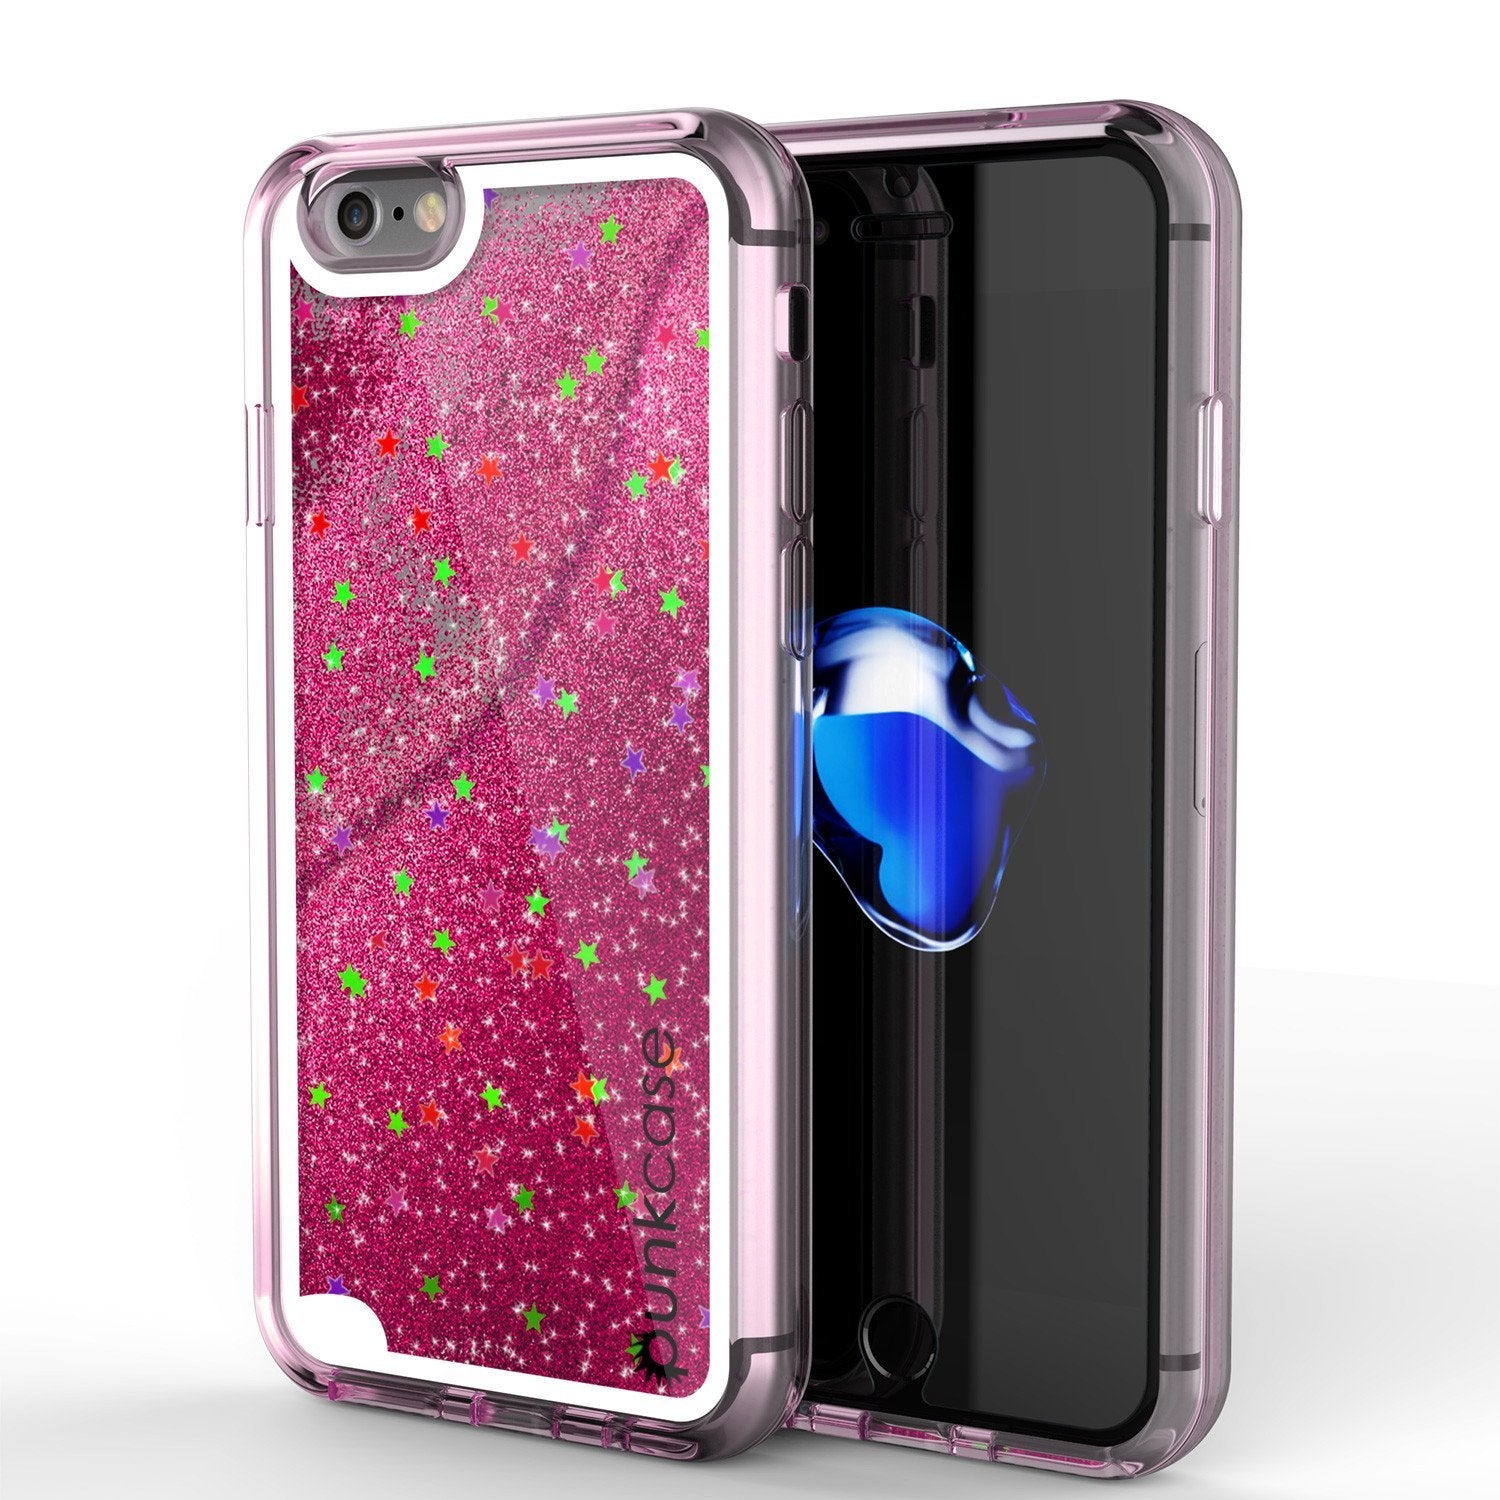 iPhone 8 Case, PunkCase LIQUID Pink Series, Protective Dual Layer Floating Glitter Cover